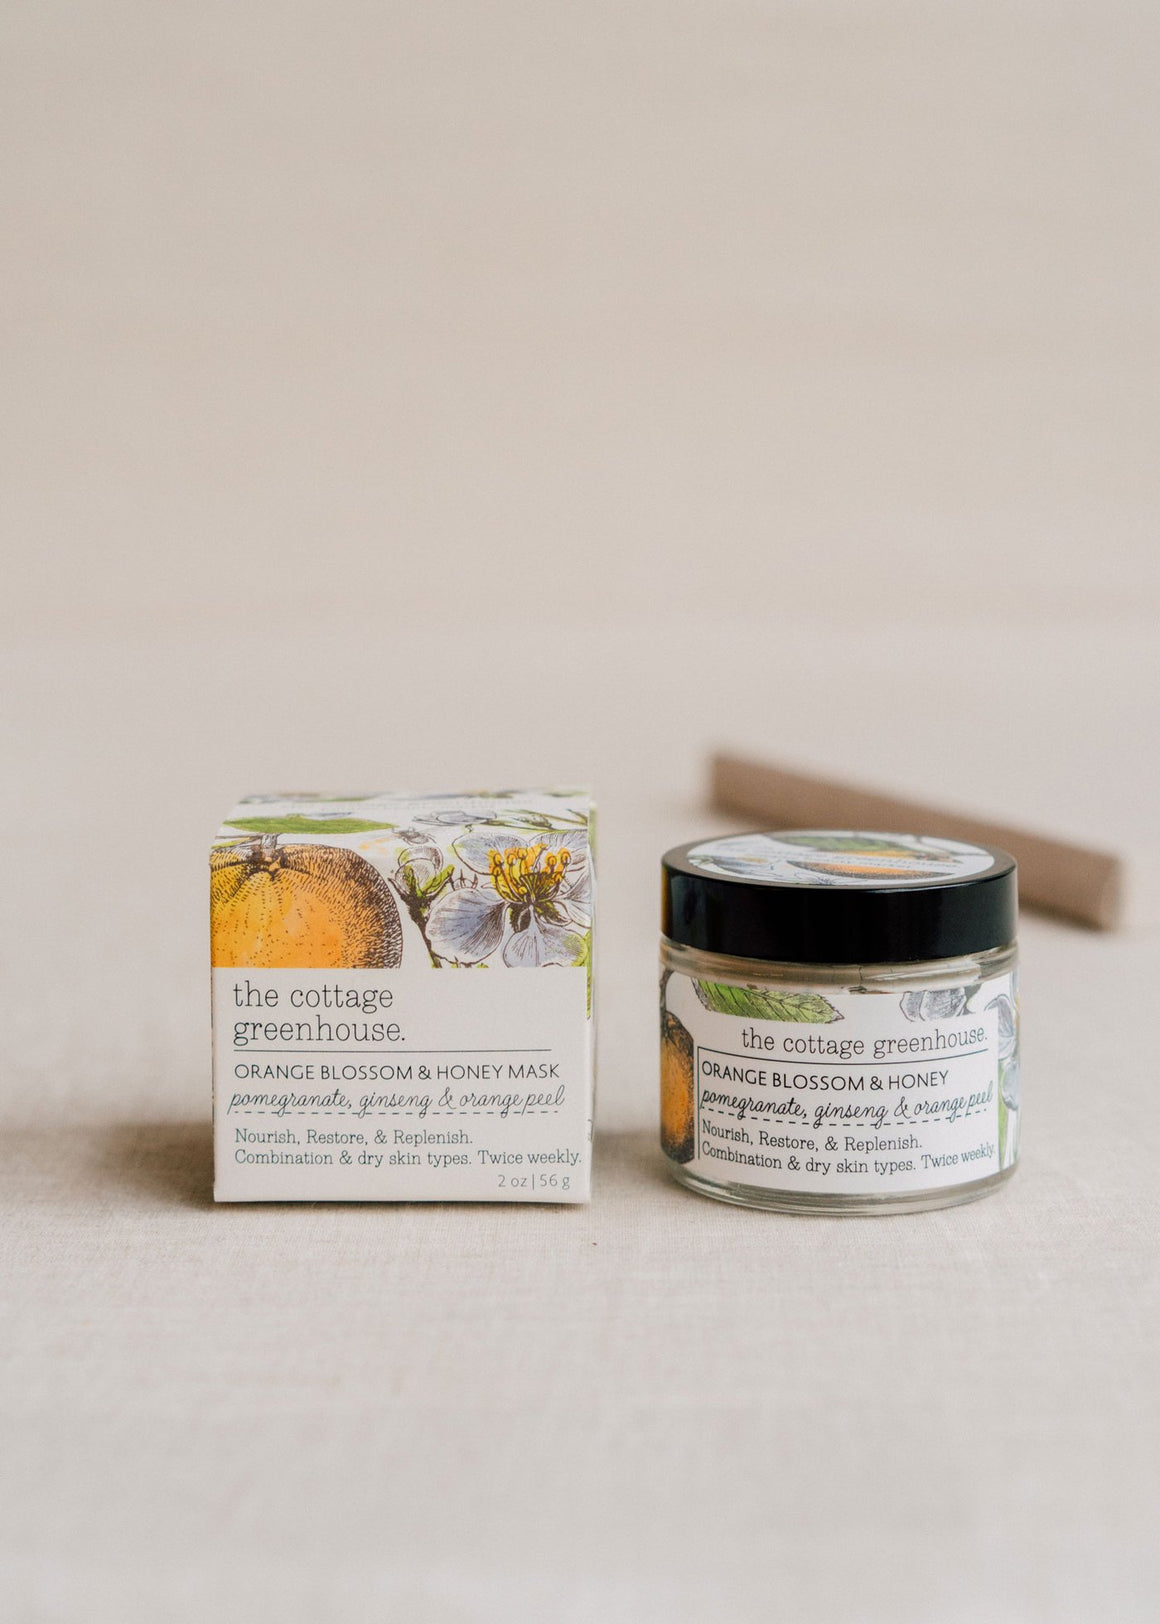 The Cottage Greenhouse Orange & Honey Face Mask